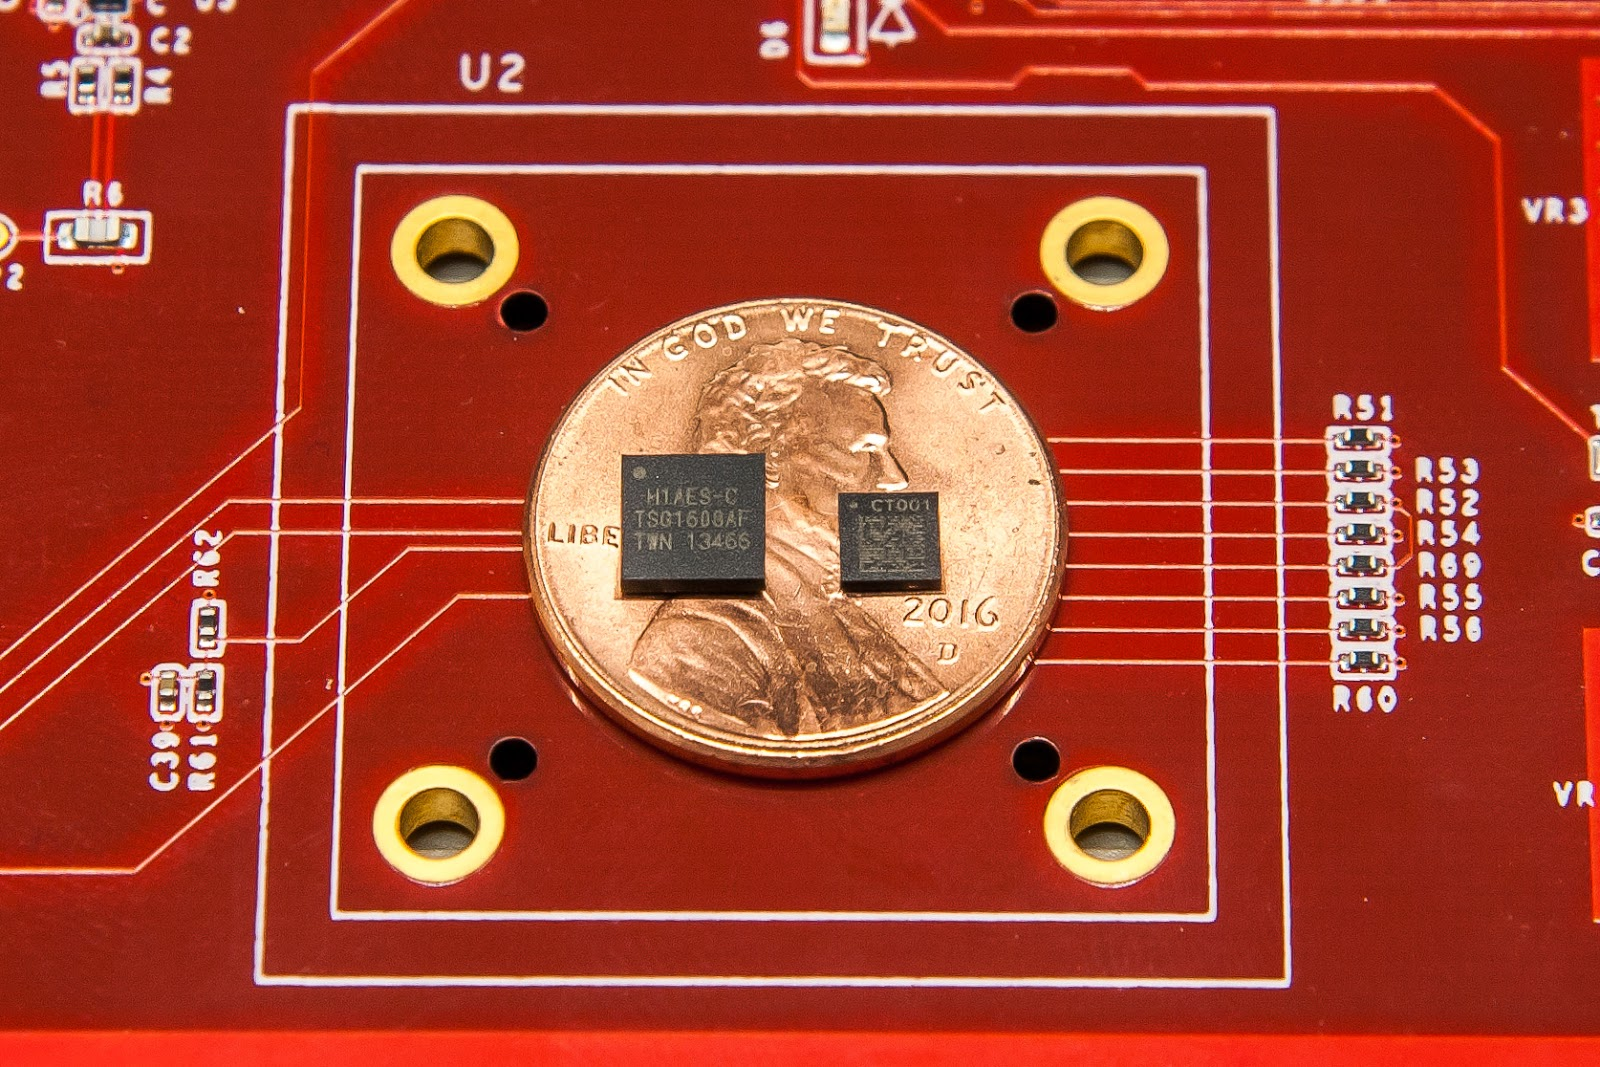 10-21: Micron Technology has announced that the company intends to